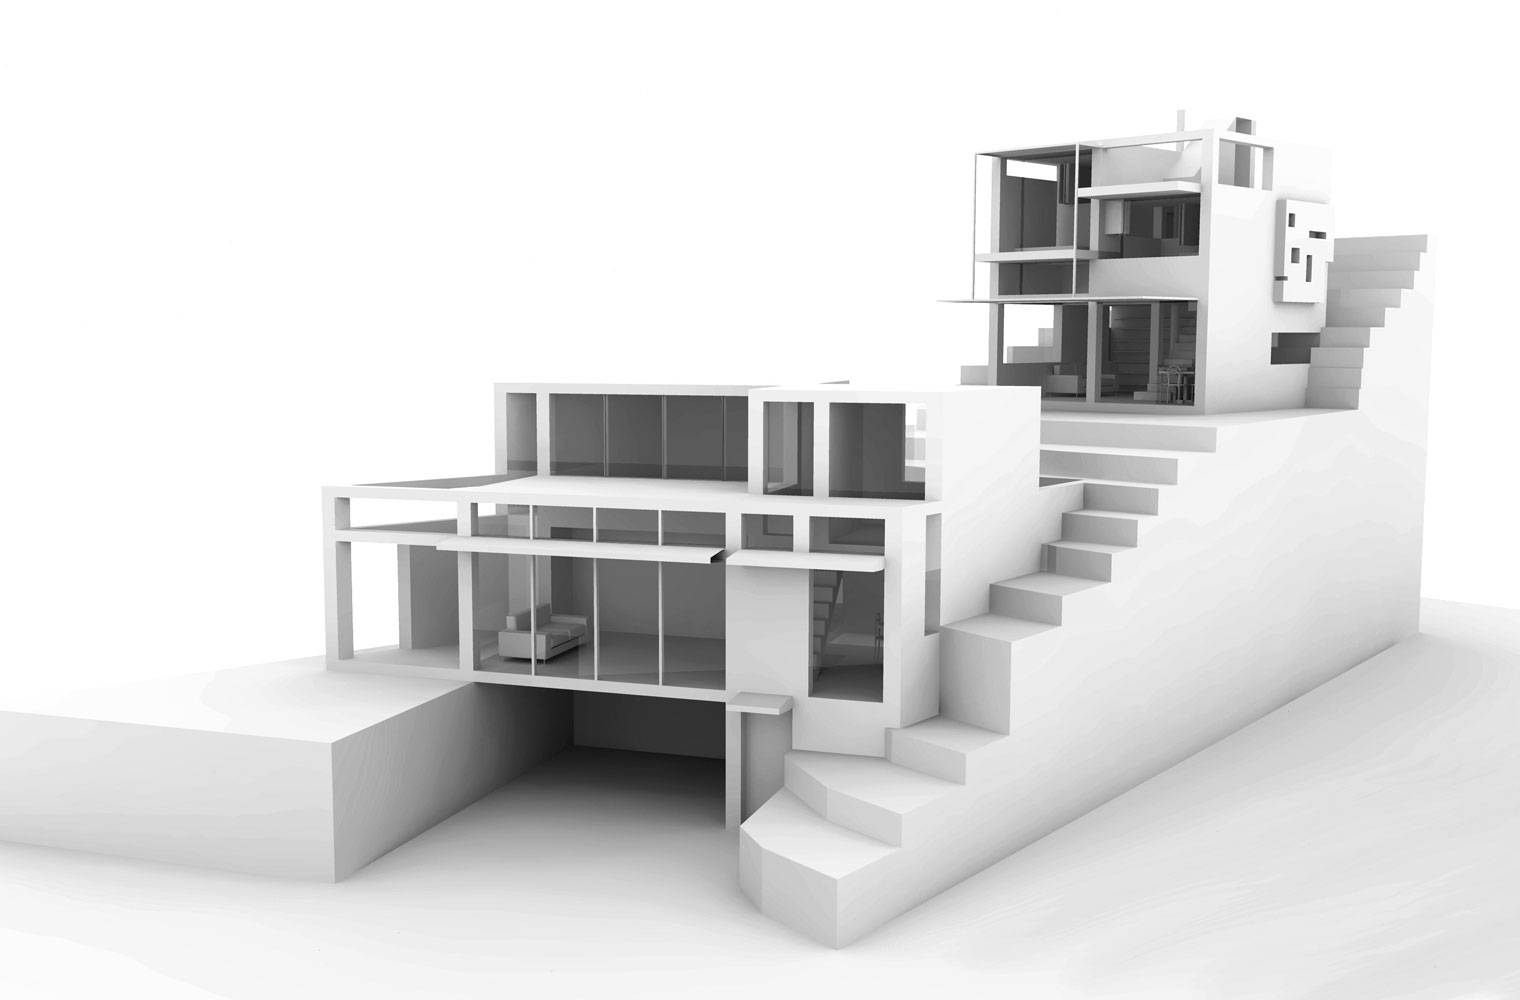 House Rese - Model View